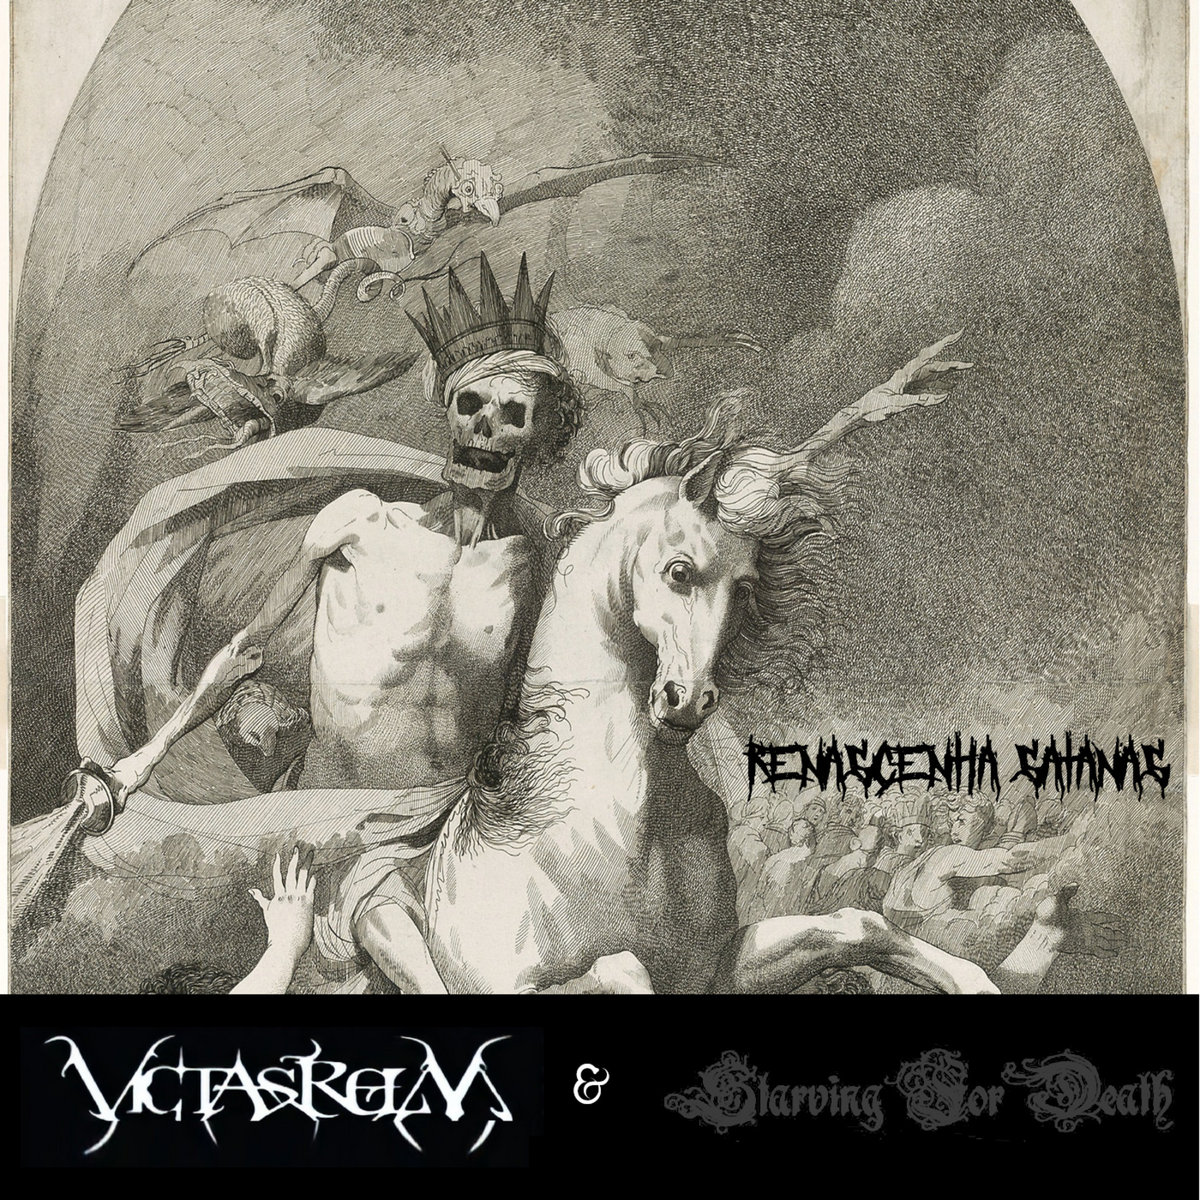 Renascentia Satanas by Victasrelm and Starving For Death